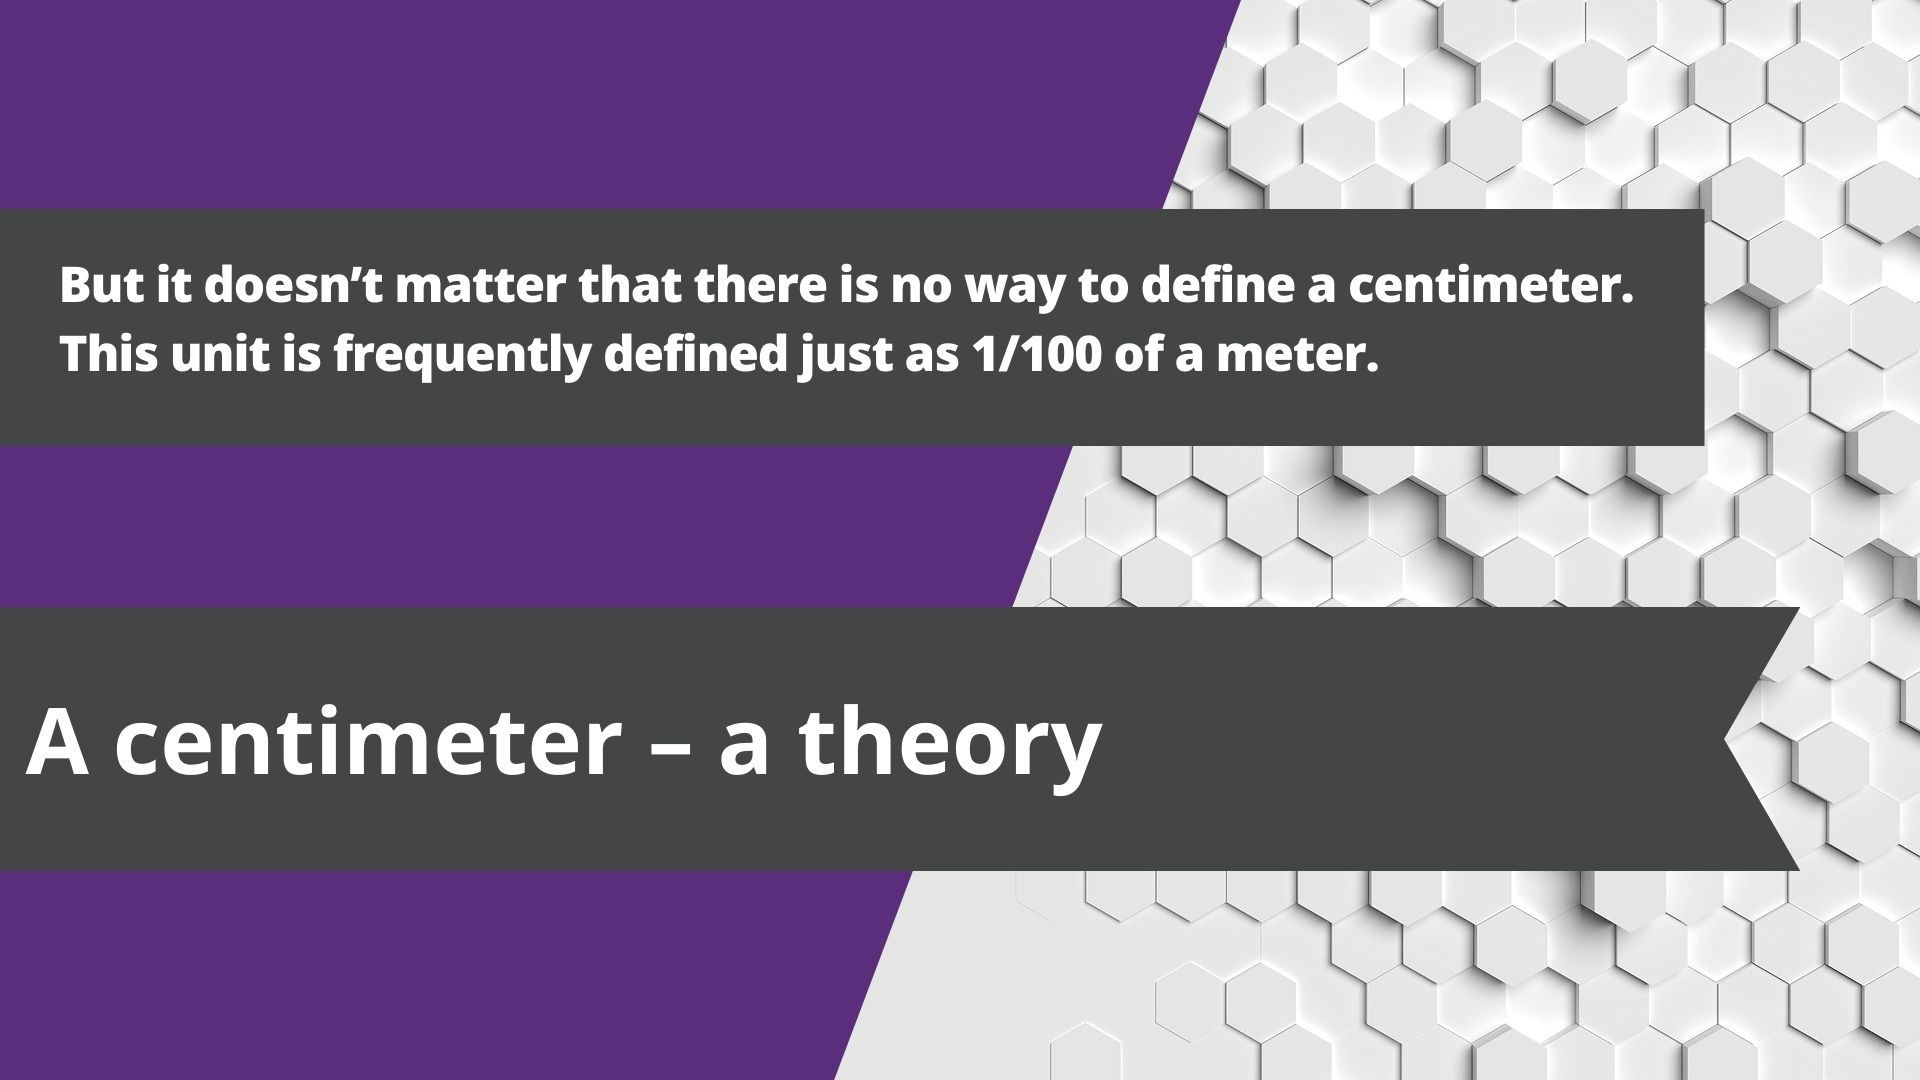 A centimeter – a theory